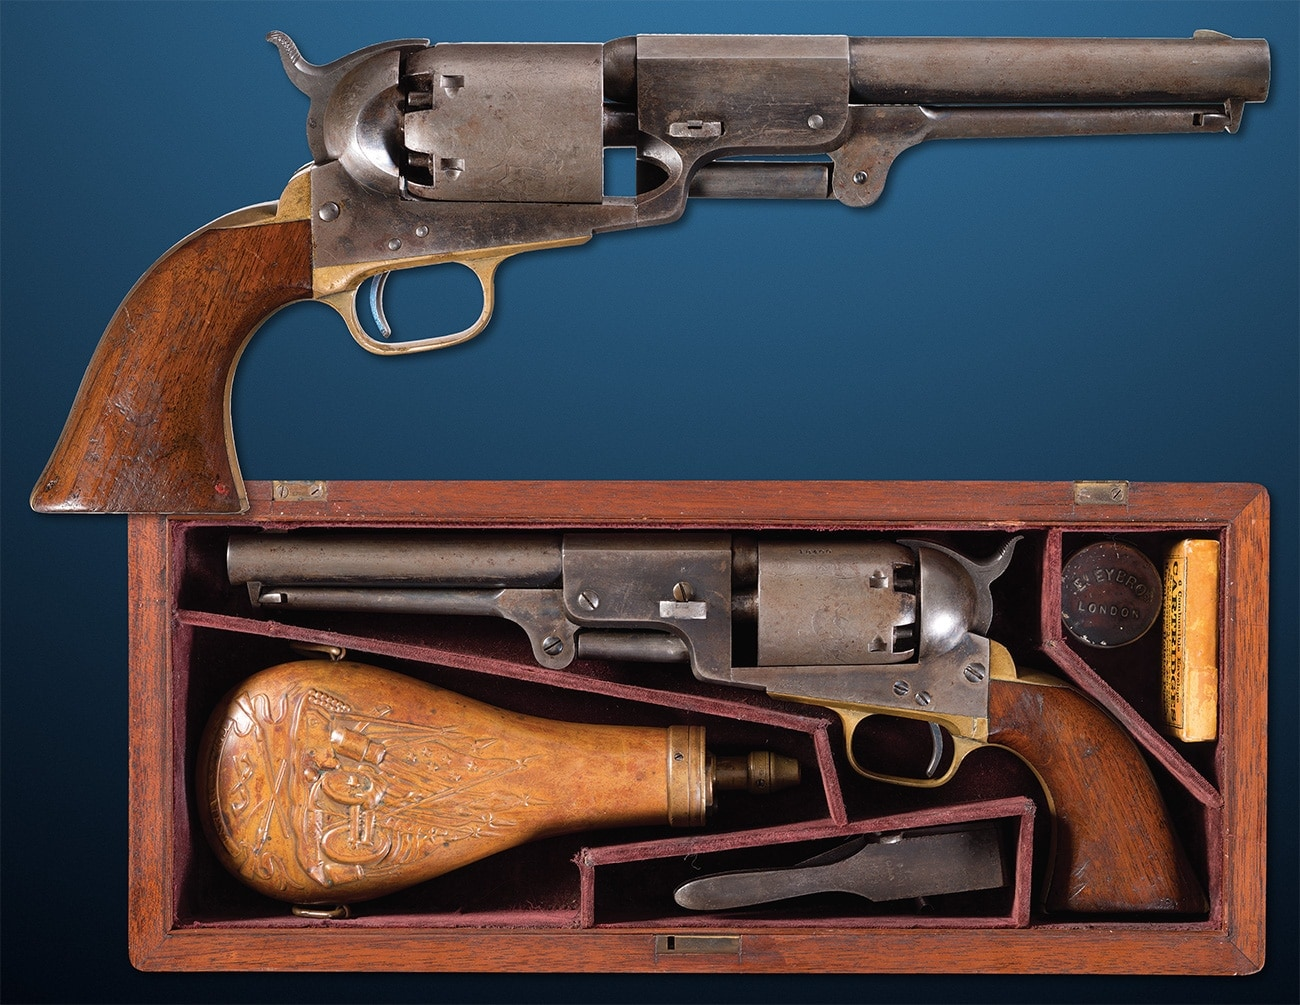 "One of Colt's earliest designs, this ""D Company"" Walker Model 1847 percussion revolver is a beast with its 9-inch partial octagon barrel and tips the scales at over 4-pounds. Just 220 of these guns were marked for D Company of the U.S. Mounted Rifles regiment as part of a 1,000 revolver run. Estimated Price: $125,000 - $175,000"